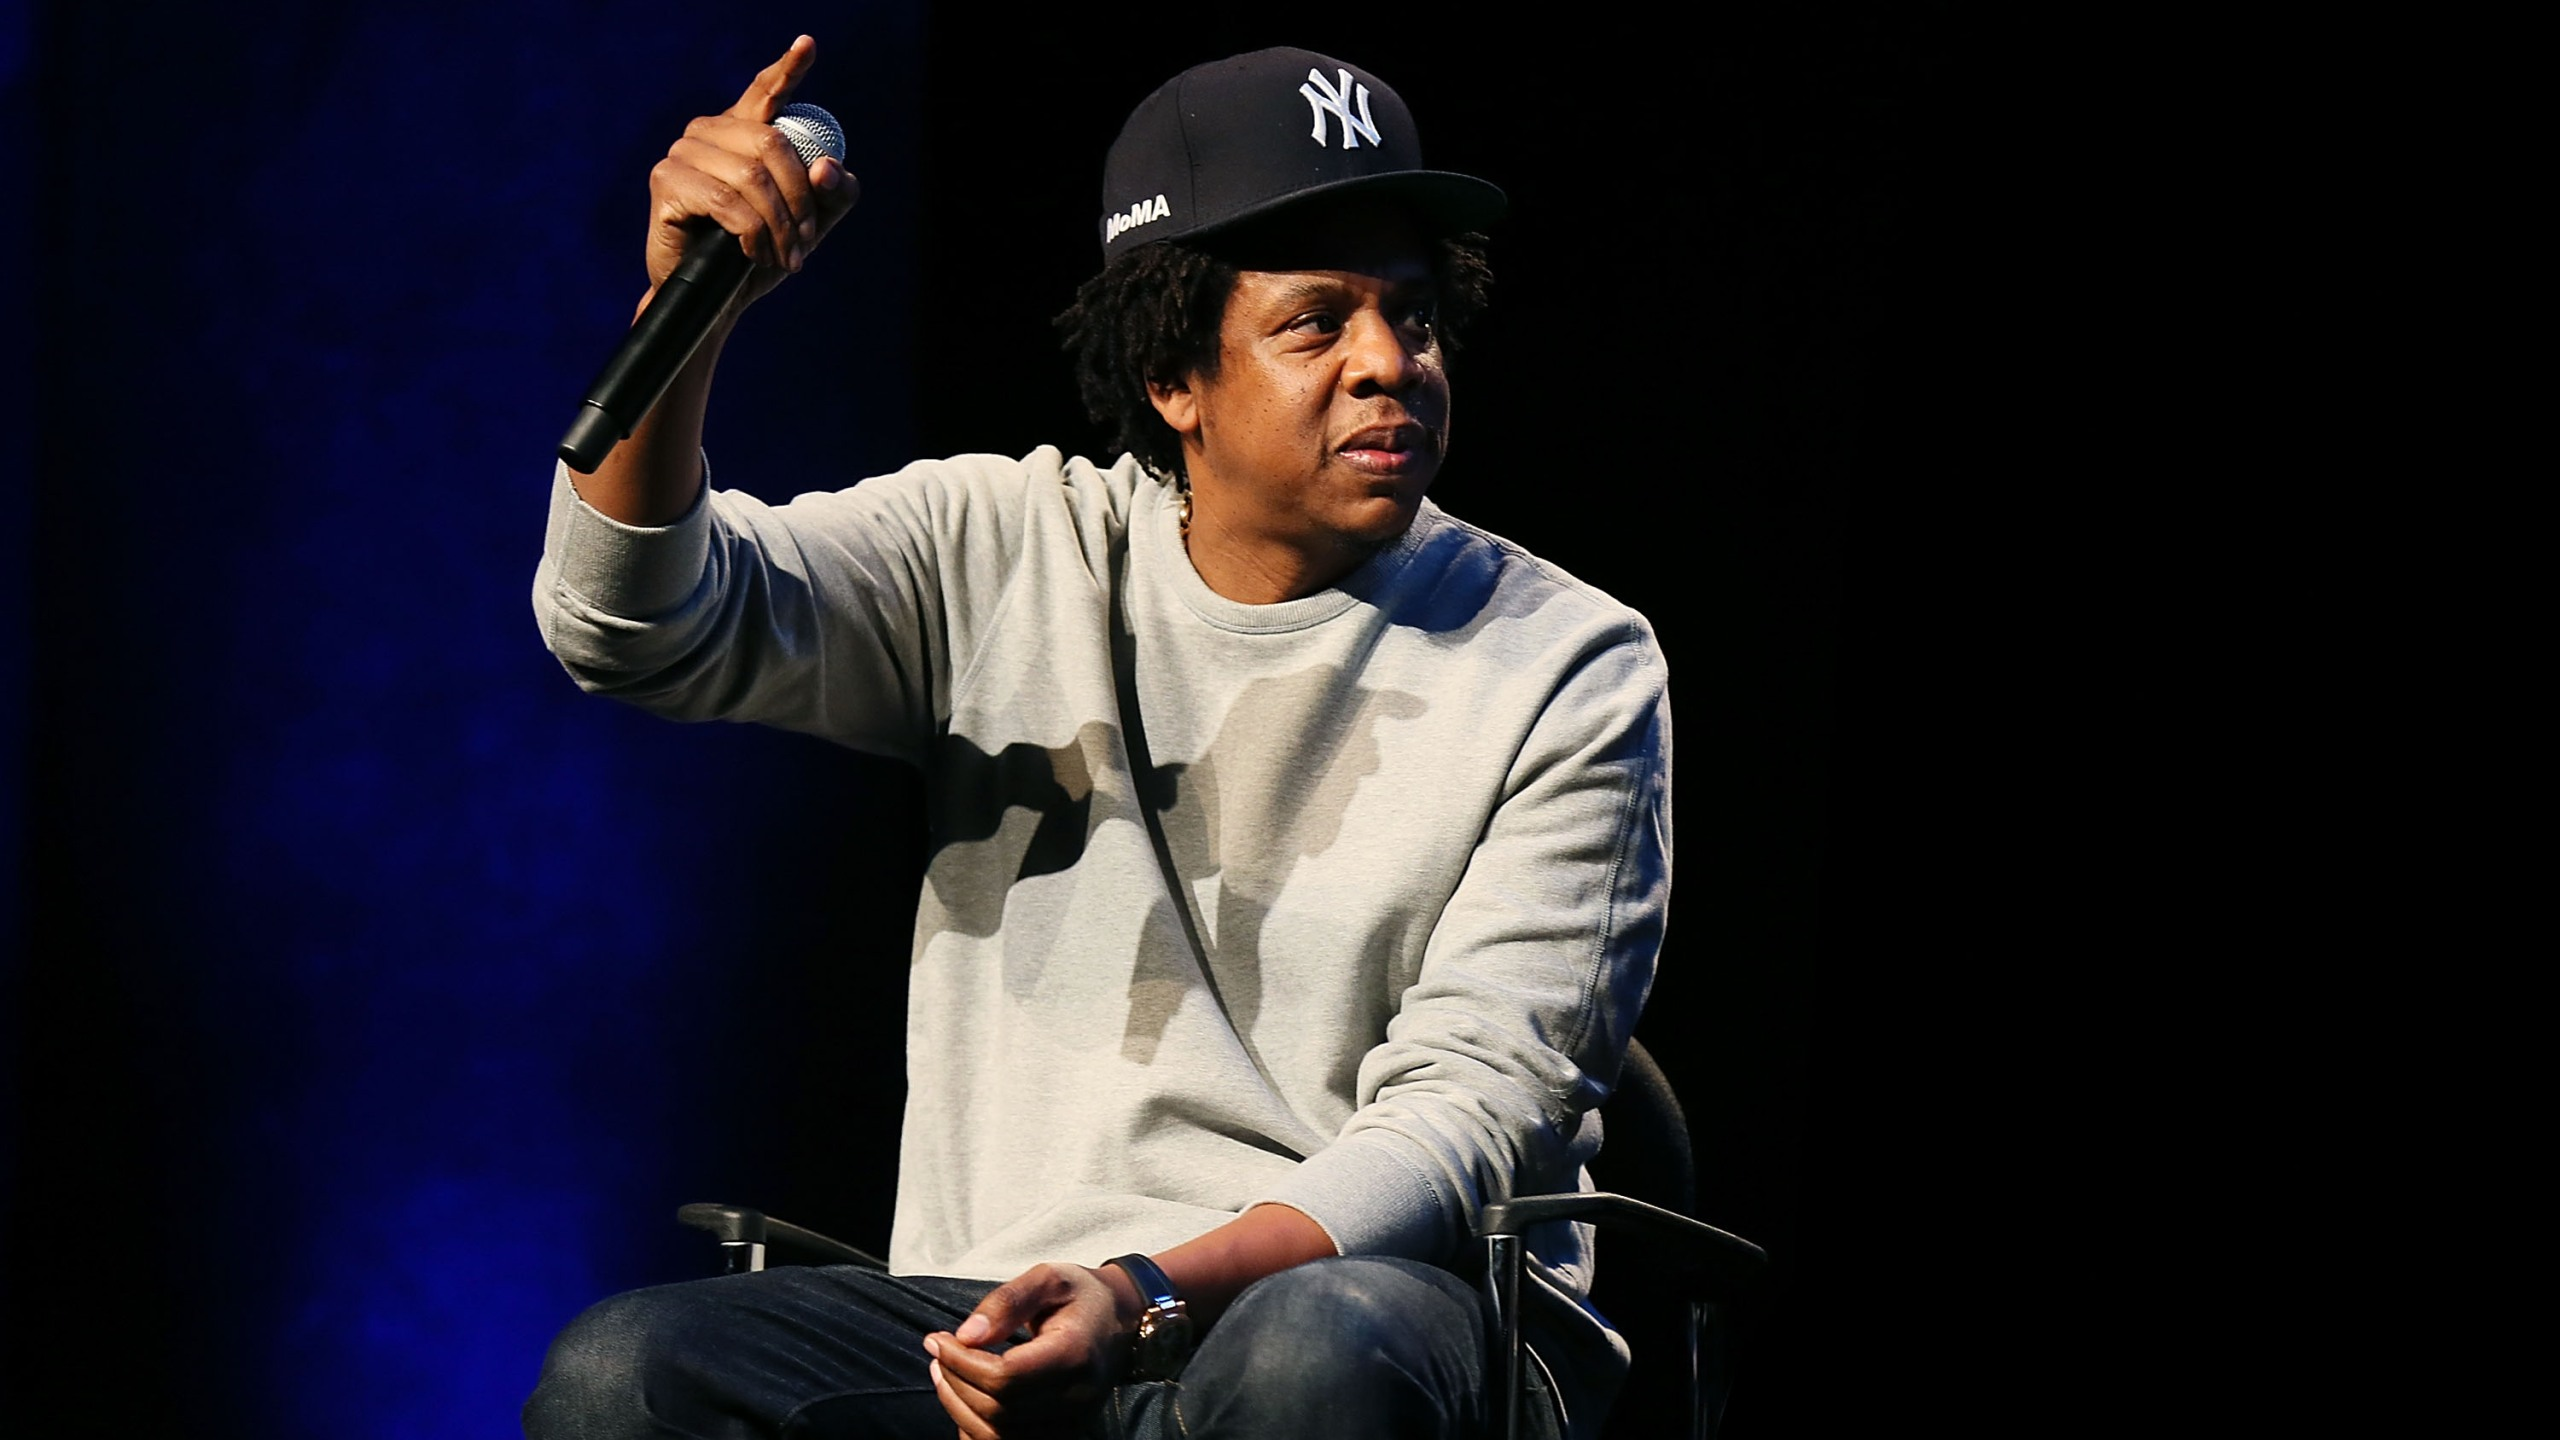 Shawn 'Jay-Z' Carter attends Criminal Justice Reform Organization Launch at Gerald W. Lynch Theater, on Jan. 23, 2019, in New York City. (Shareif Ziyadat/Getty Images via CNN)